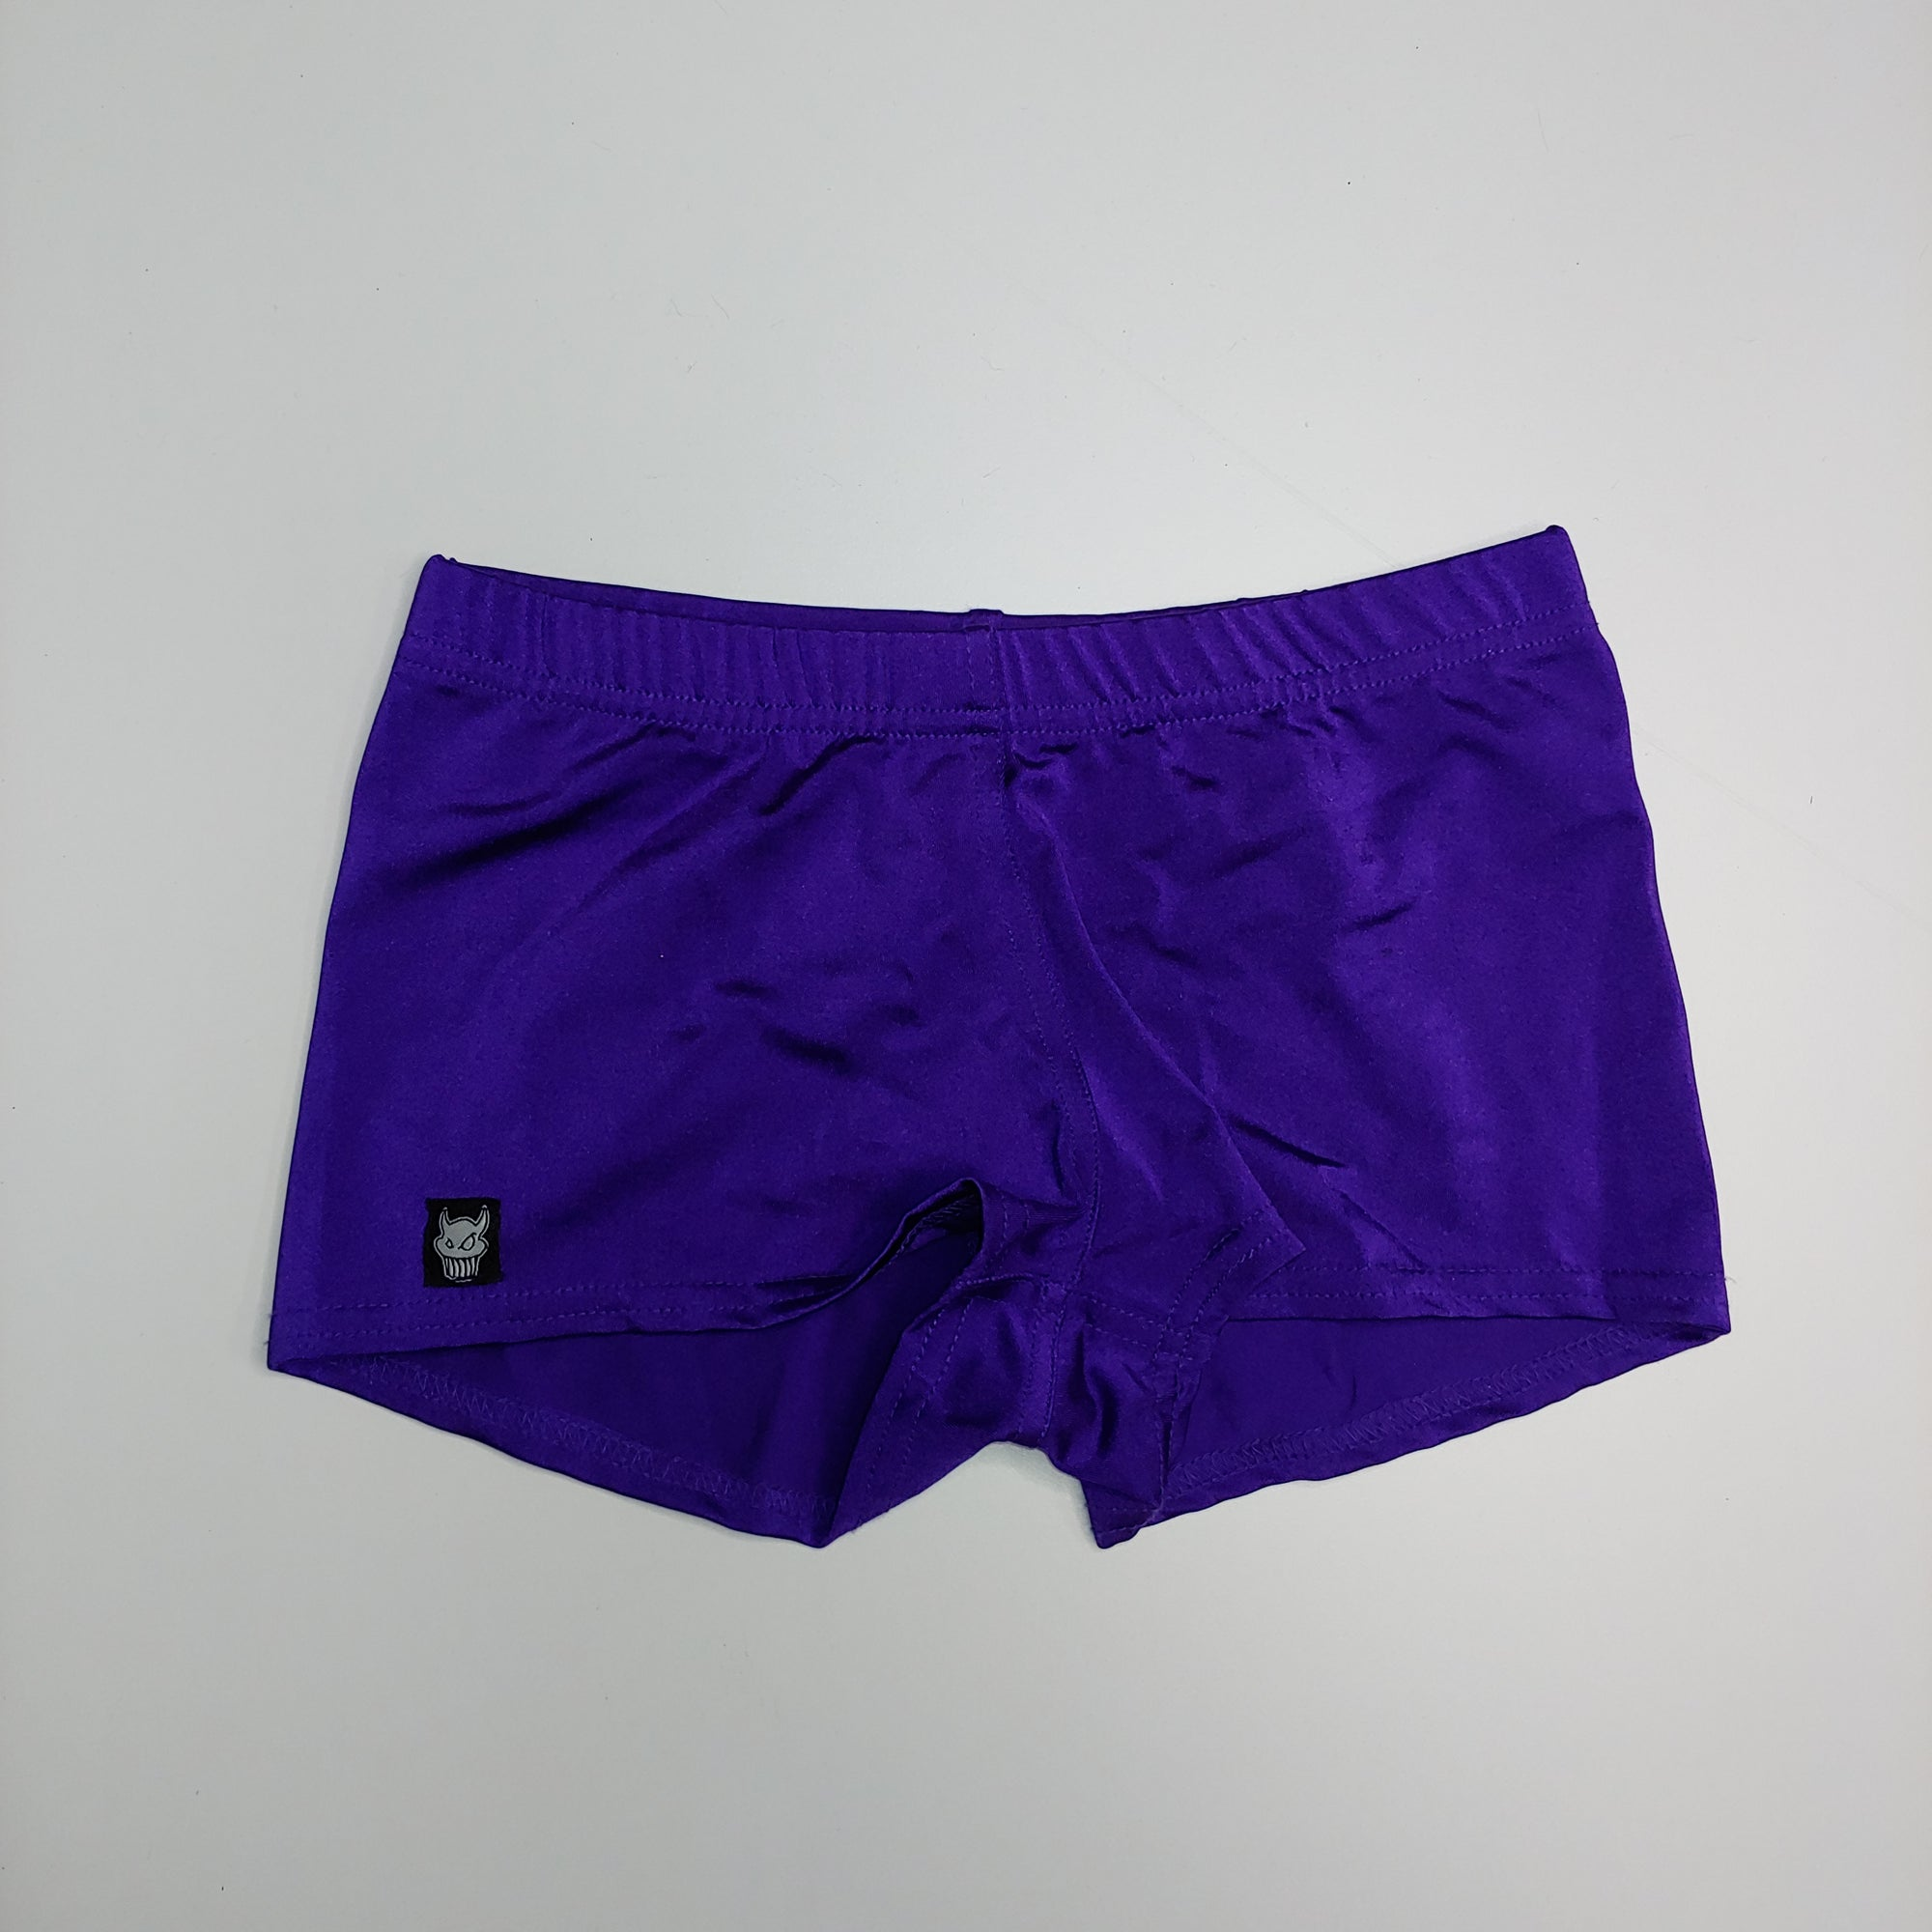 2XS-Purple Booty Shorts